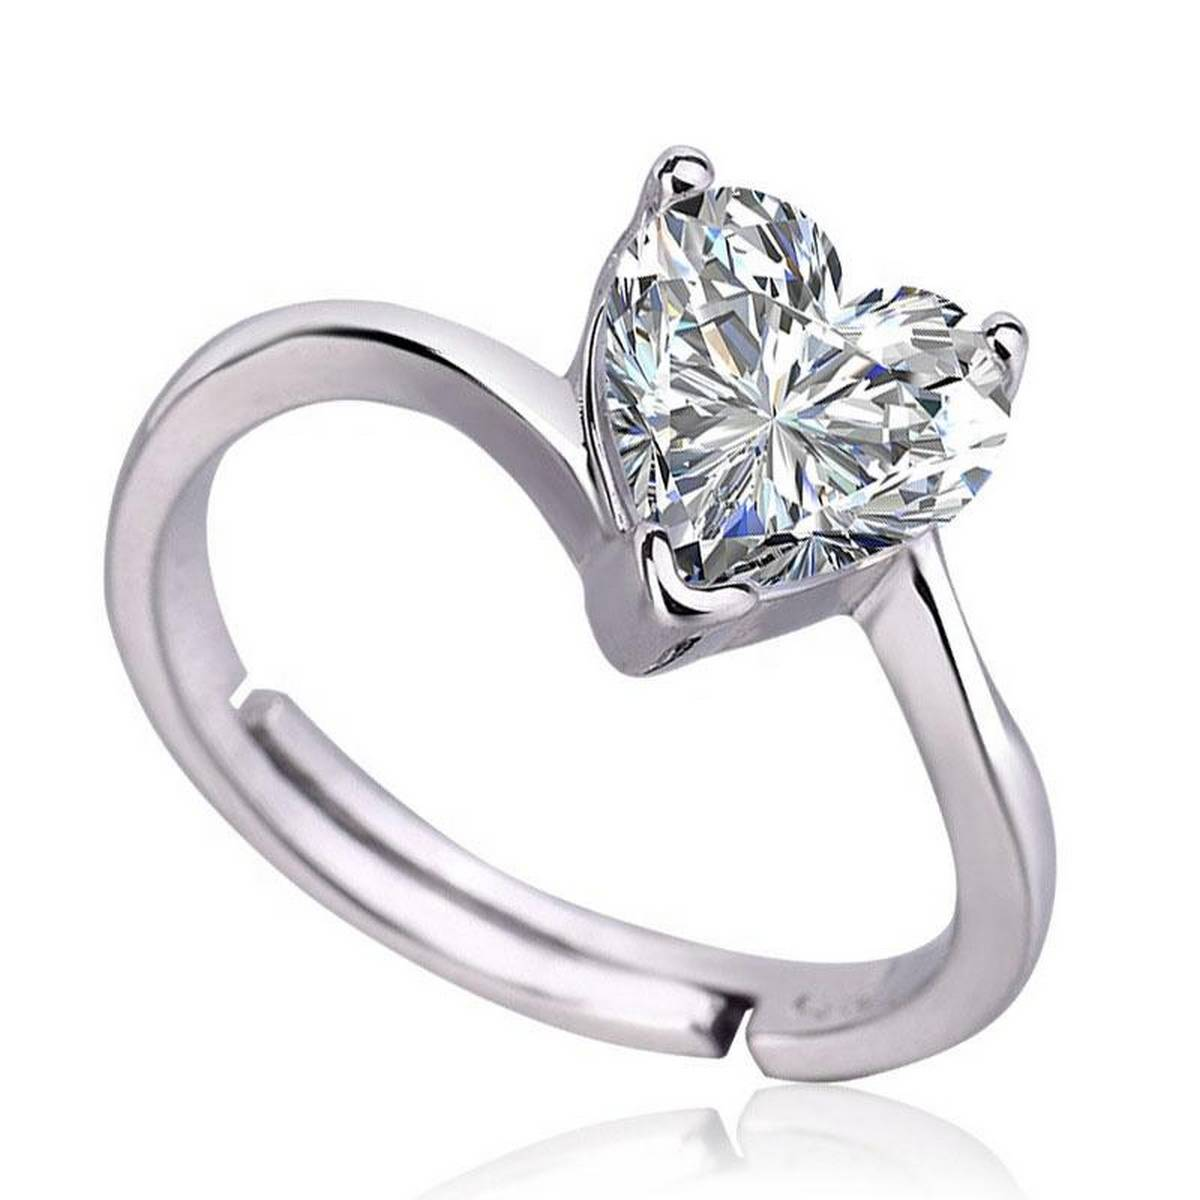 Fashion SS Wedding Engagement Collection Silver Adjustable Love Heart Shape CZ Diamond Rings for Girls & Women - NJ120